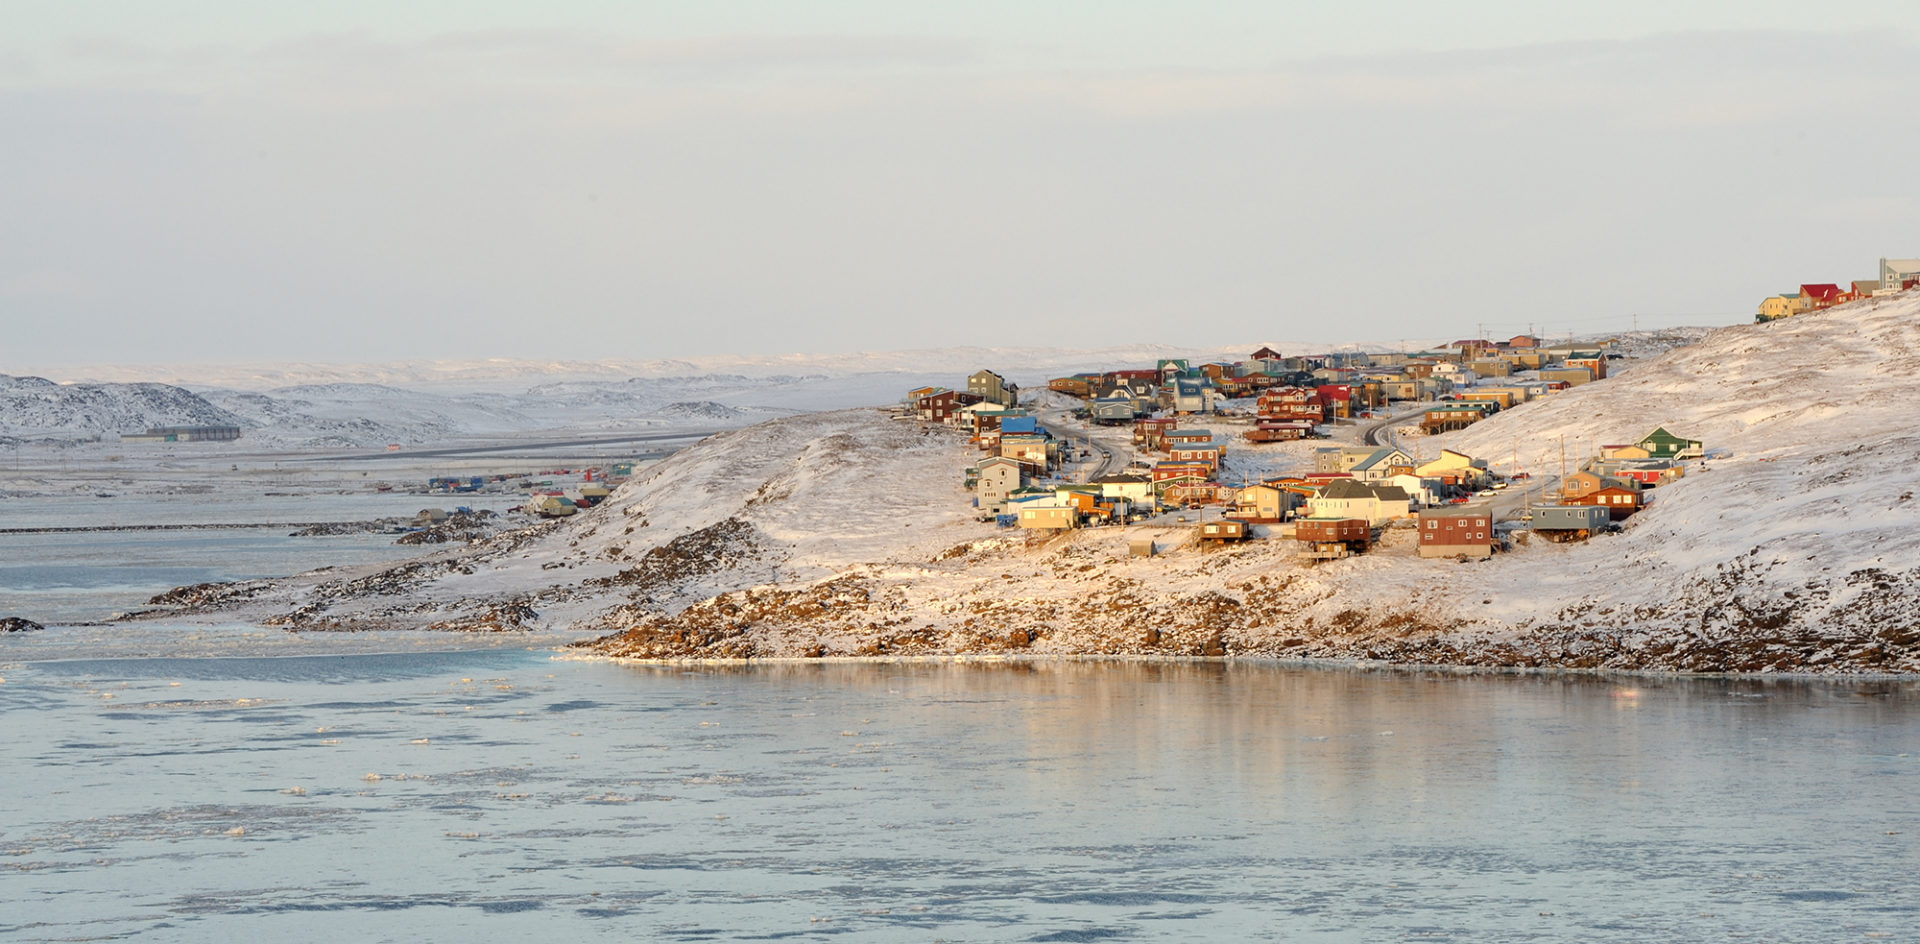 Iqaluit outskirts and Frobisher Bay. Date 5 November 2009 Source Own work Author Saffron Blaze